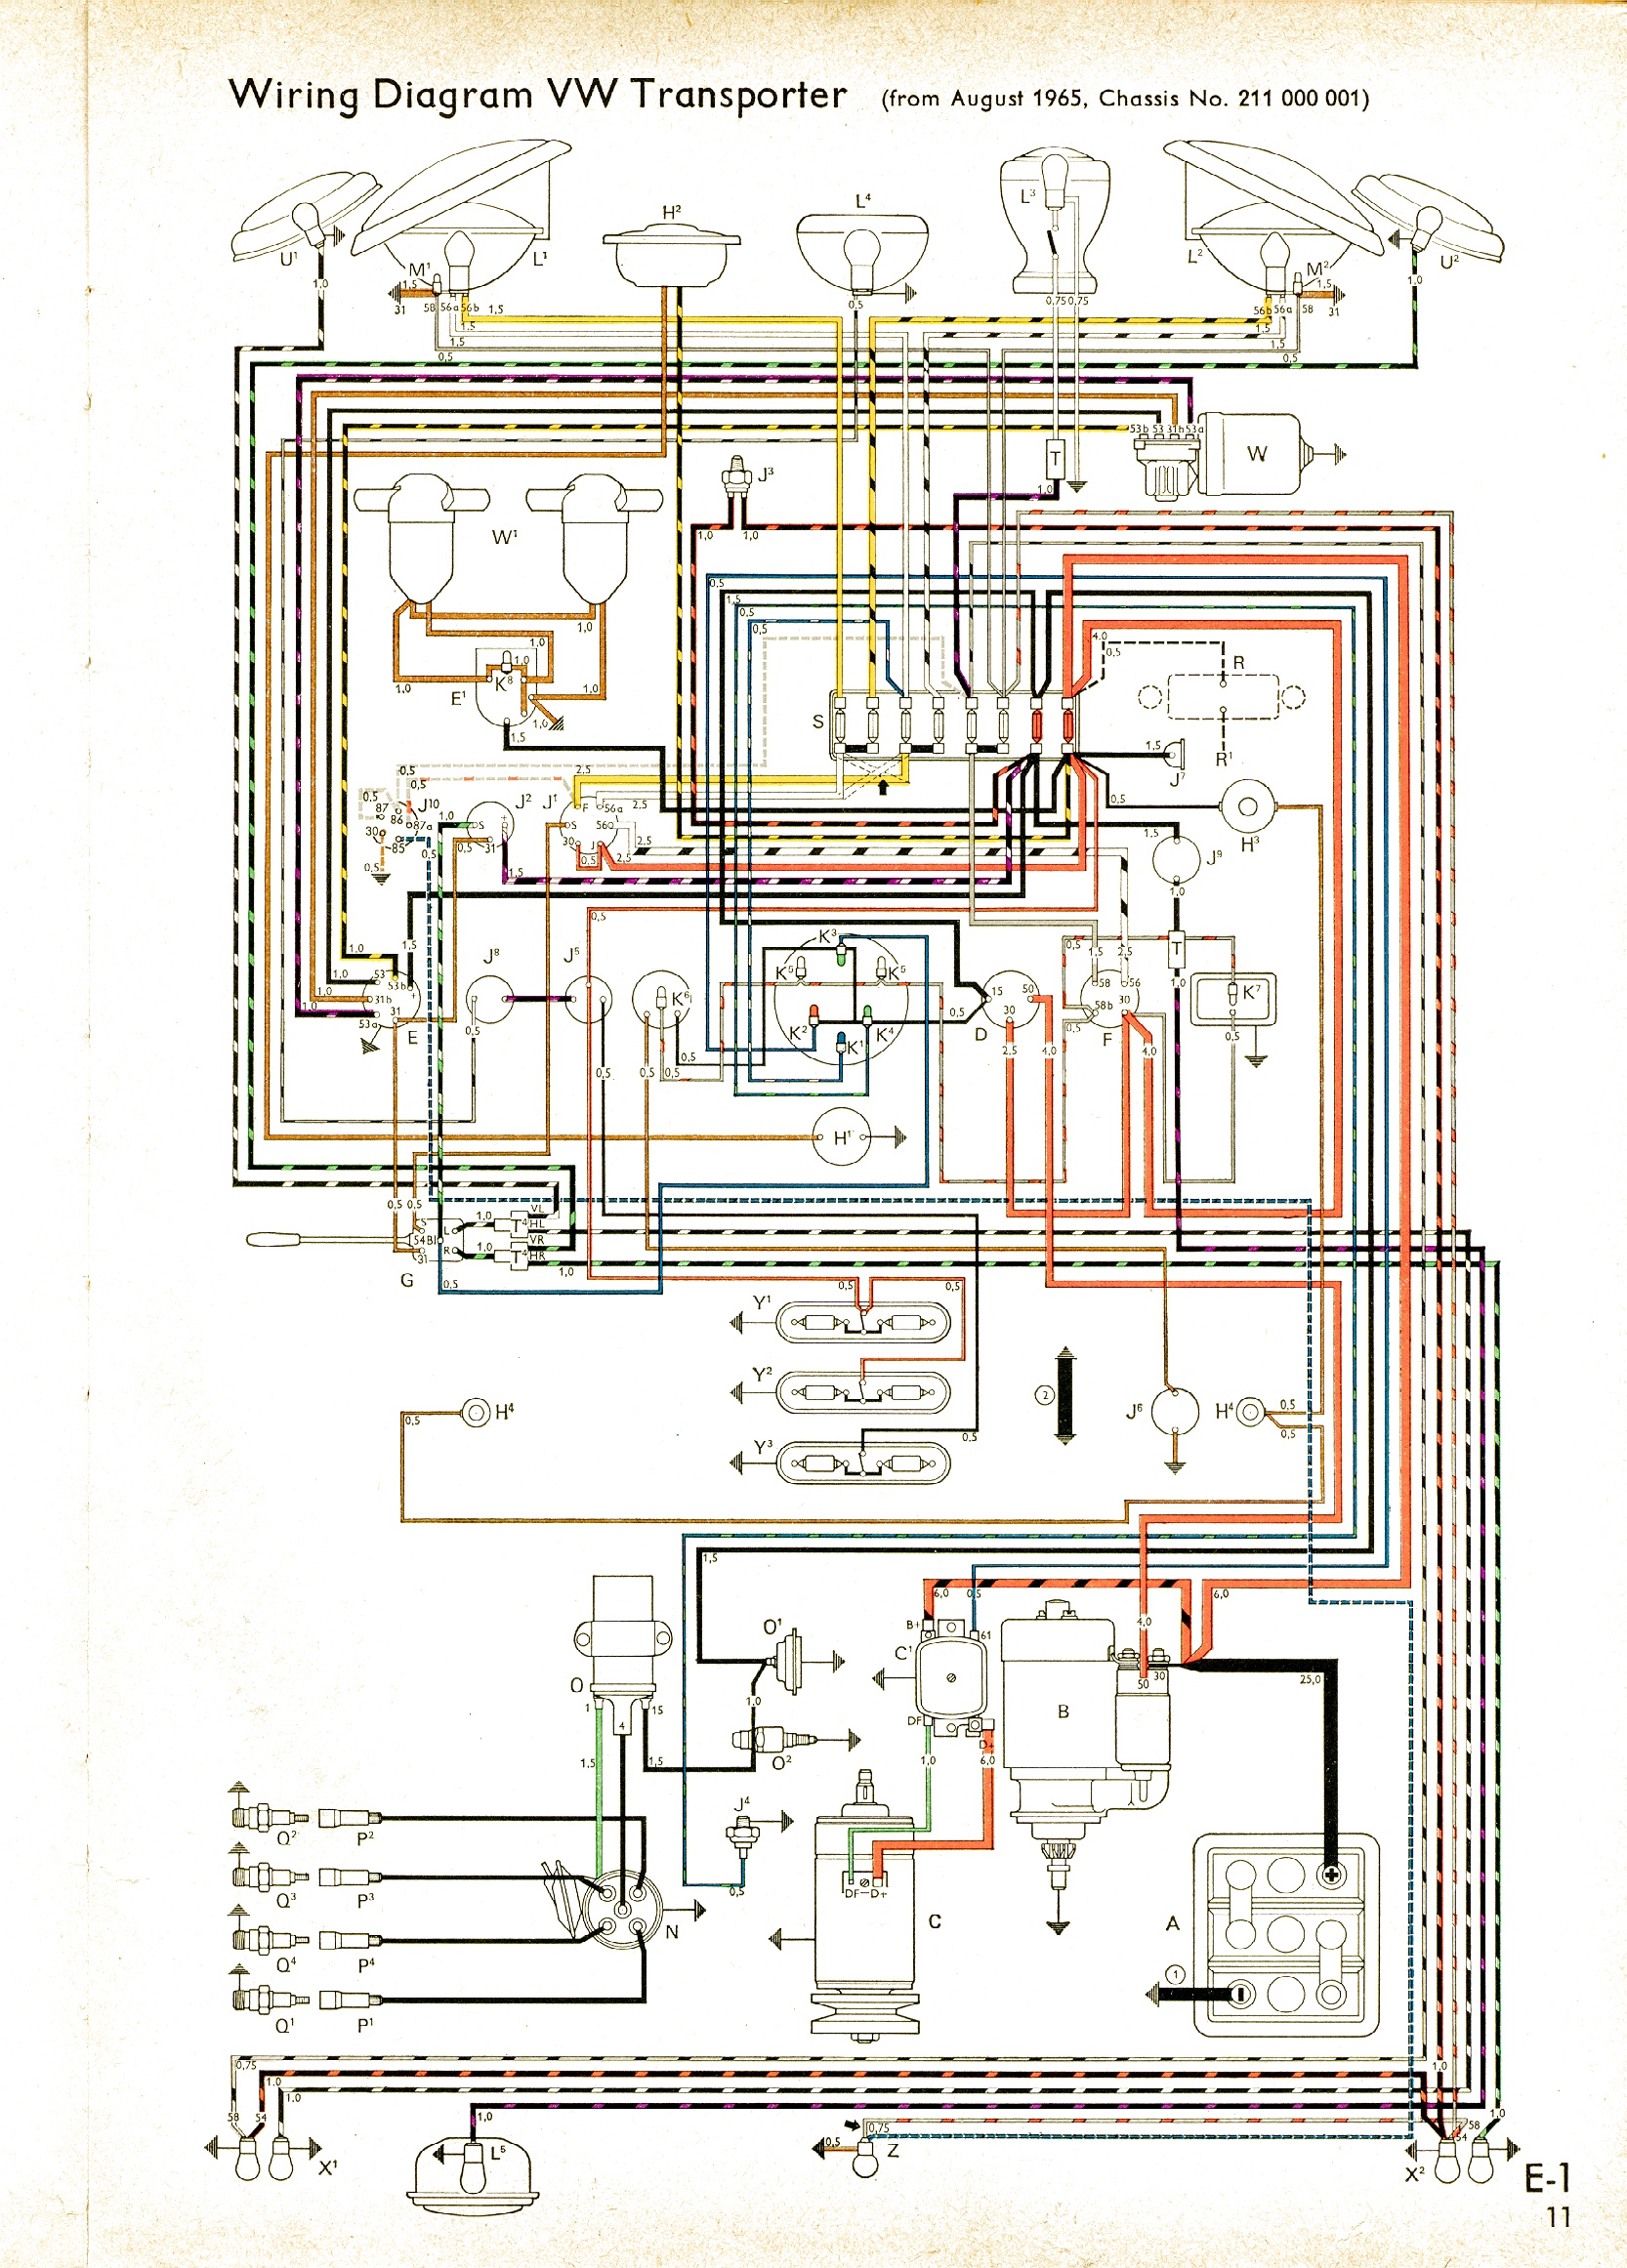 bus 65 bus wiring diagram vw wiring harness diagram \u2022 wiring diagrams j 1973 Super Beetle Wiring Diagram at reclaimingppi.co